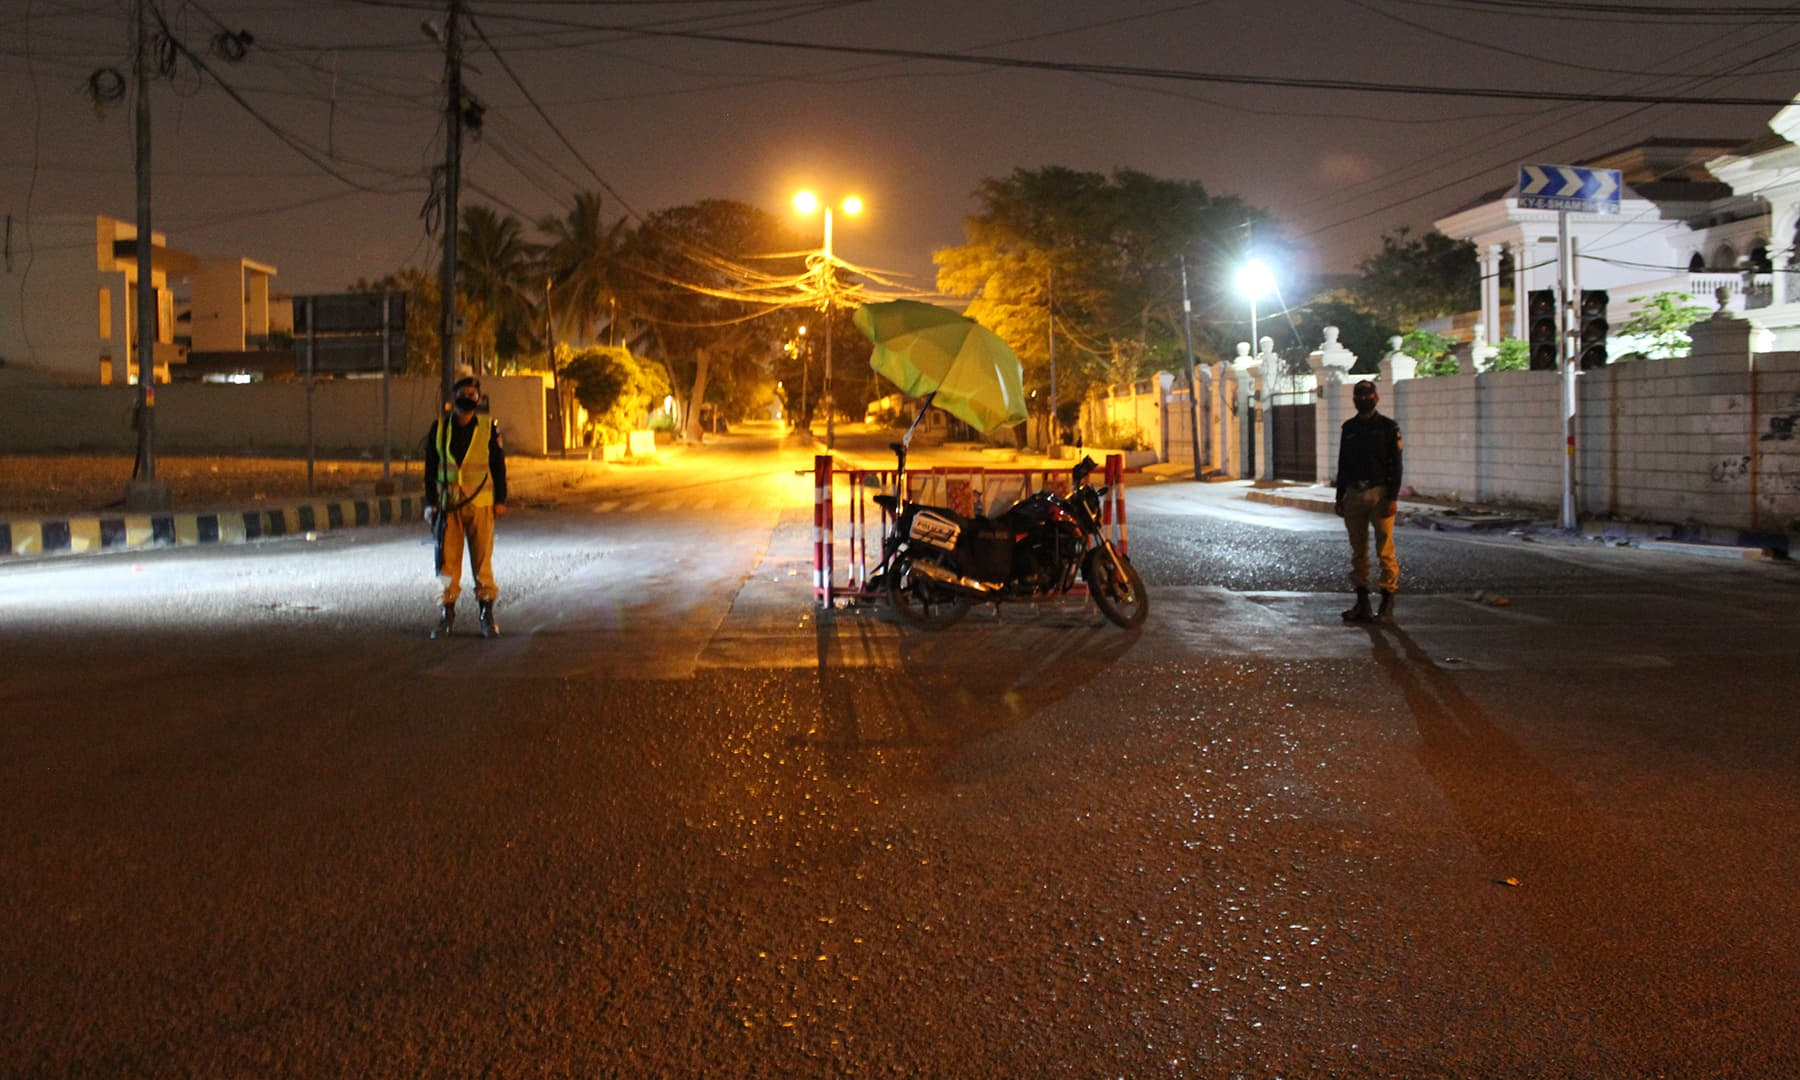 Police personnel perform duty at a street in Karachi's DHA.